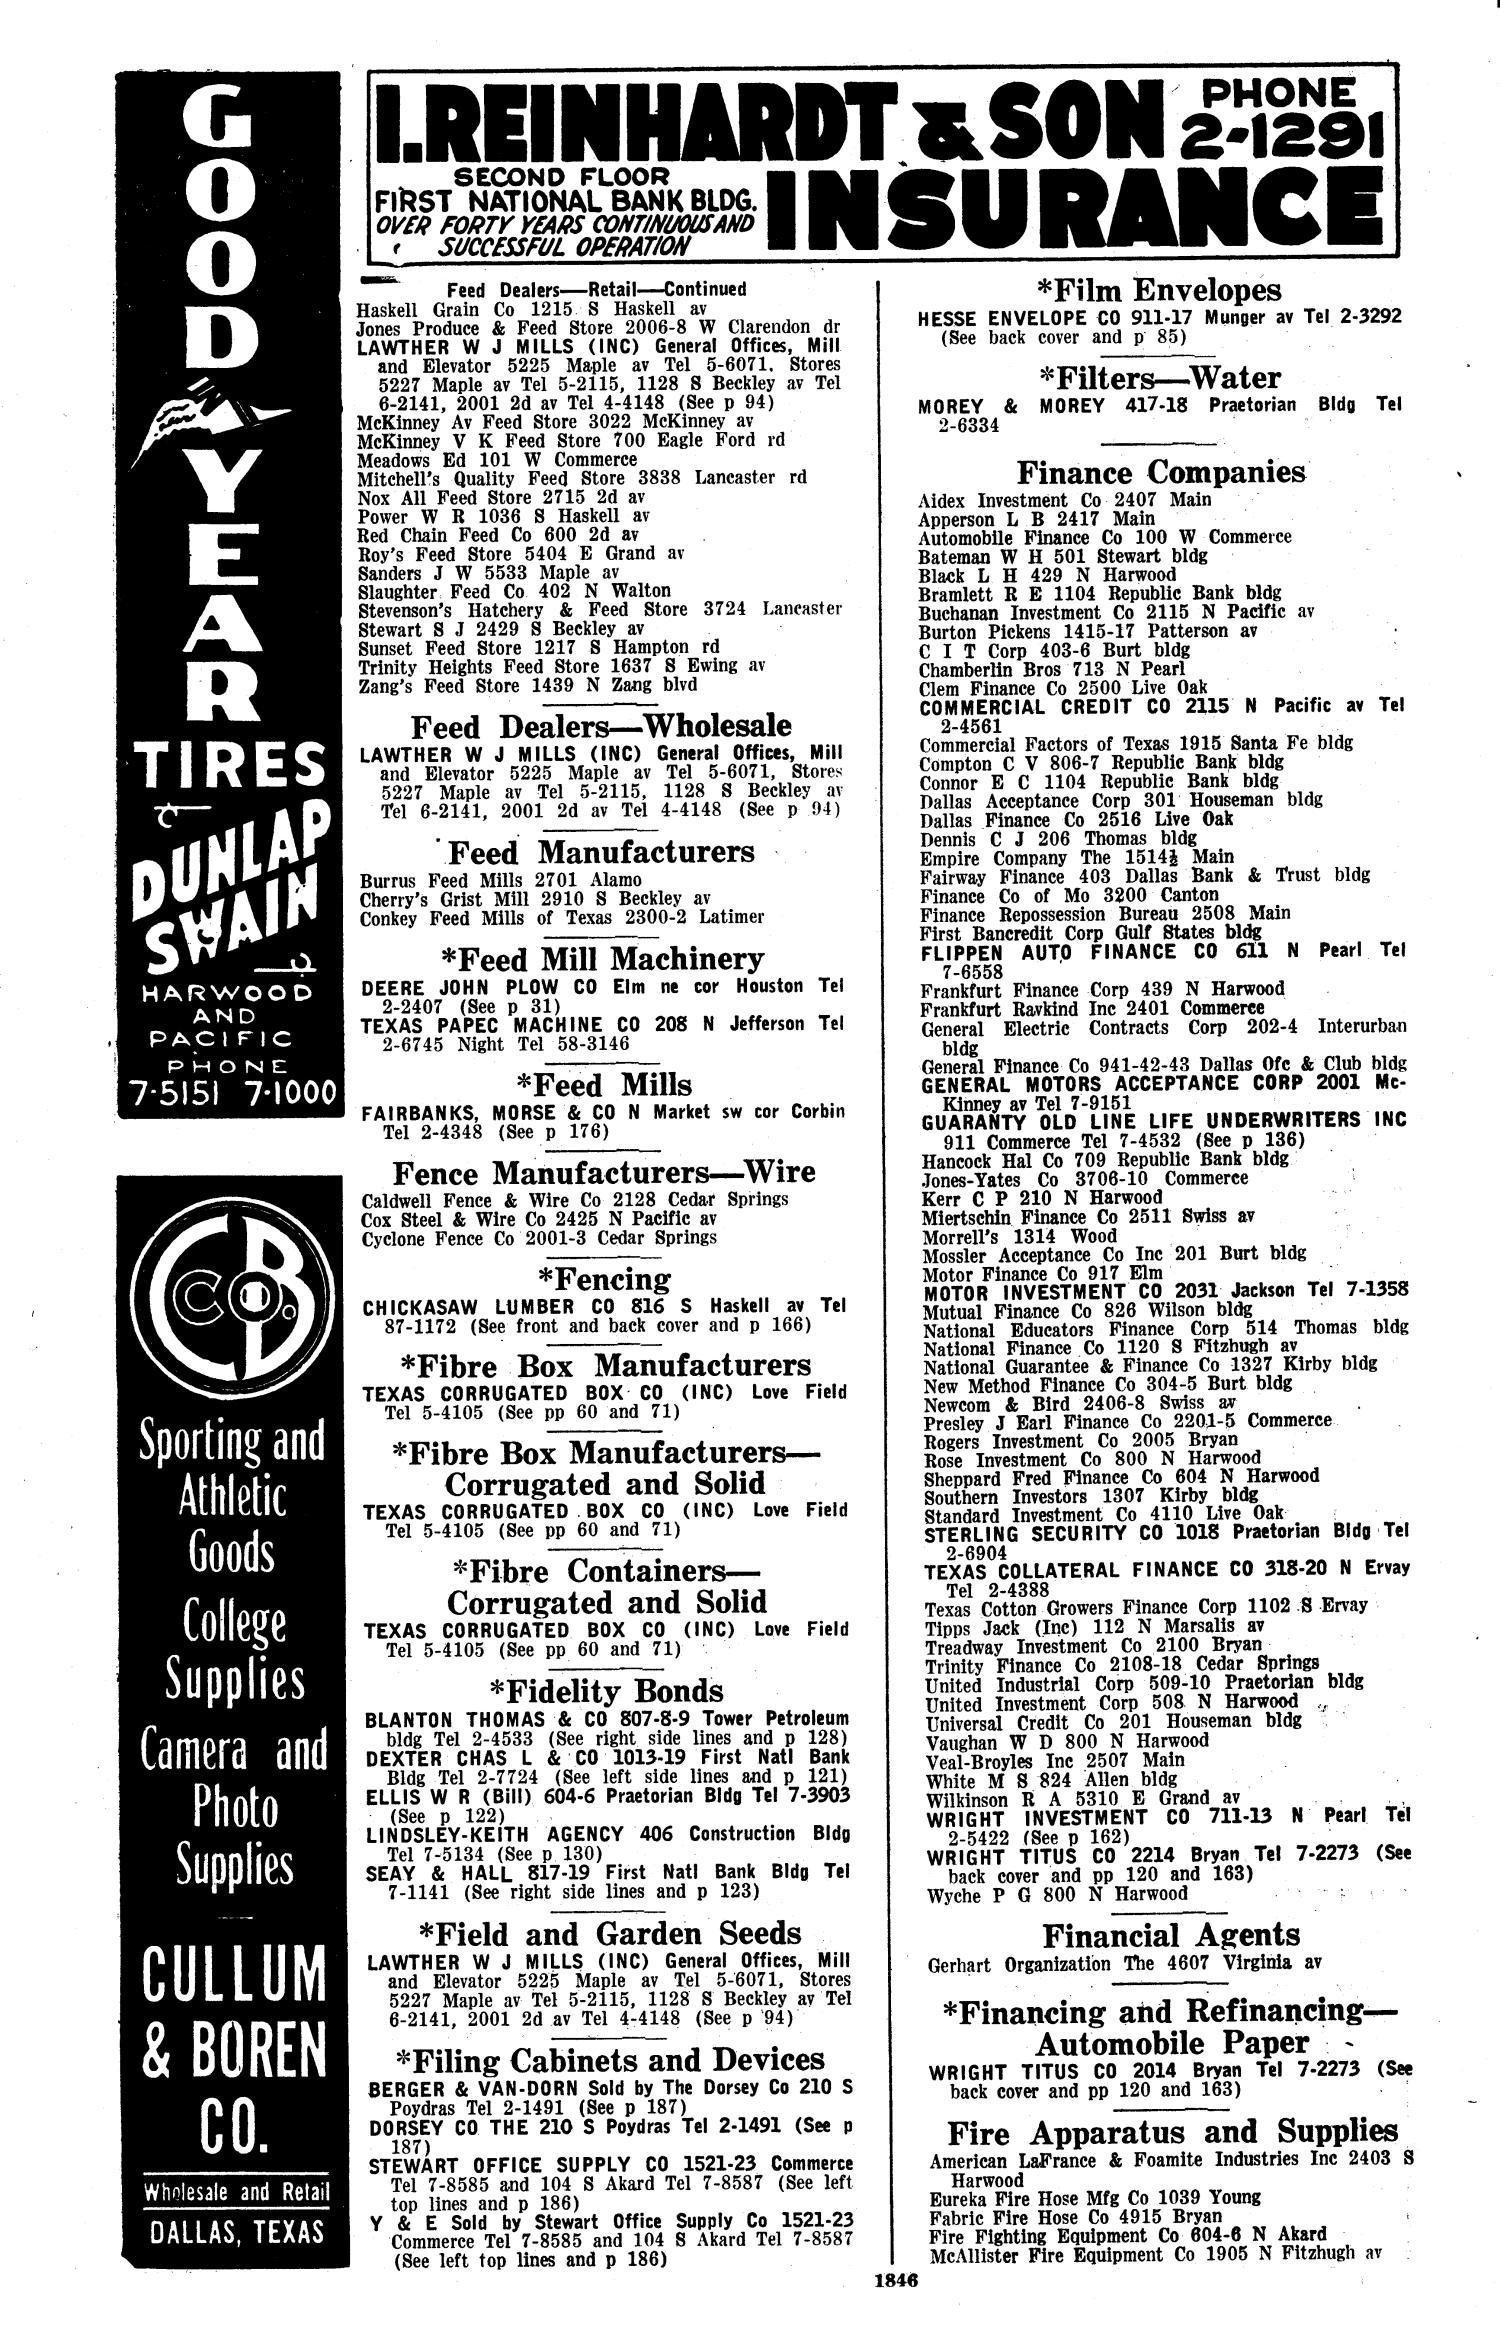 Dallas City Directory, 1936 - Page 1,846 - The Portal to Texas History